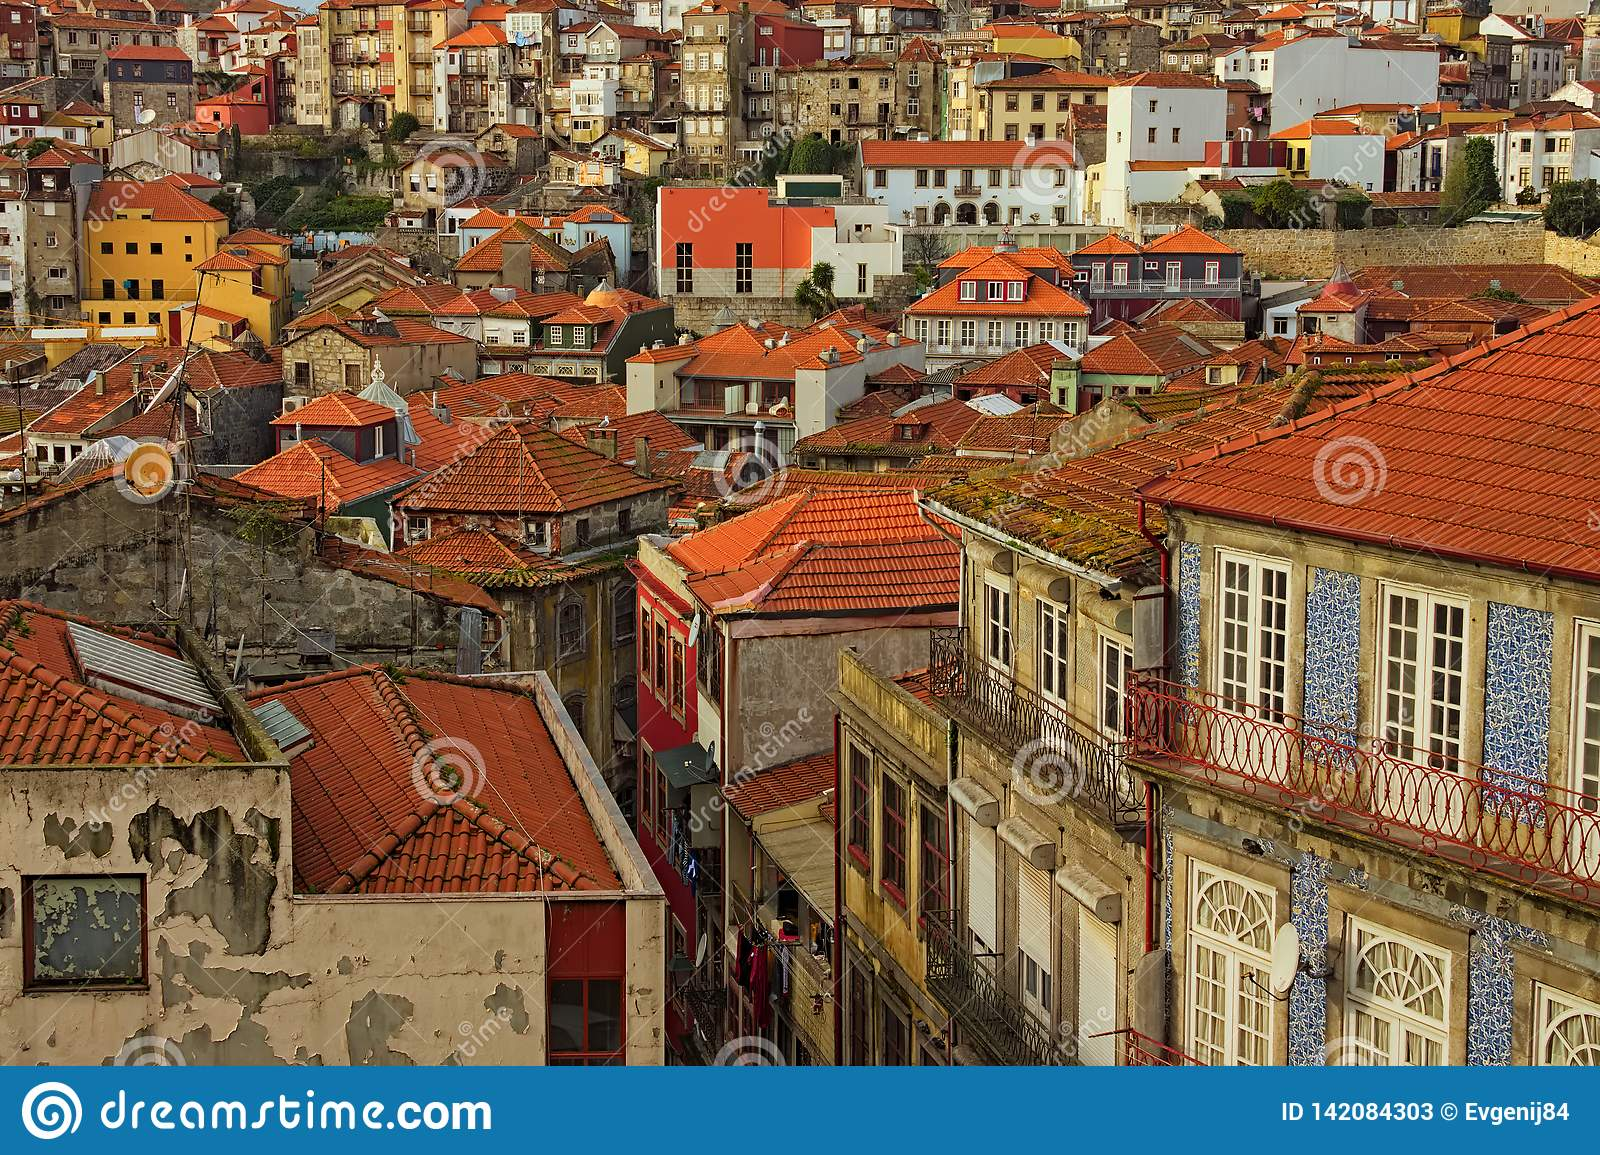 Stunning aerial view of traditional historic buildings in Porto. Vintage houses with red tile roofs.